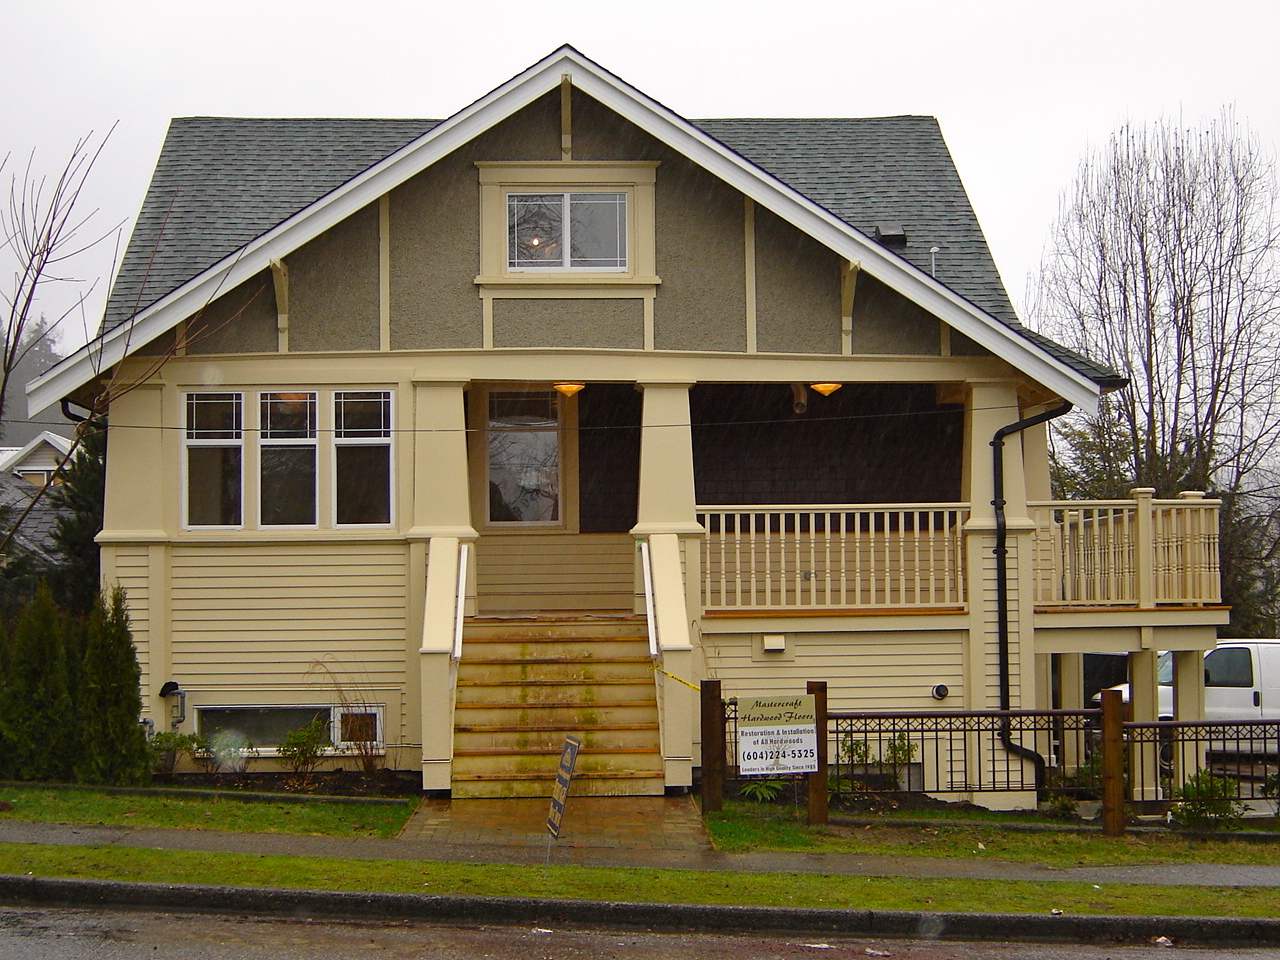 Adjacent to the last house is this modified Arts and Crafts-style bungalow. Soofi took advantage of Port Moody's new carriage house bylaw, placing two houses on one lot. Faces Grant Street.